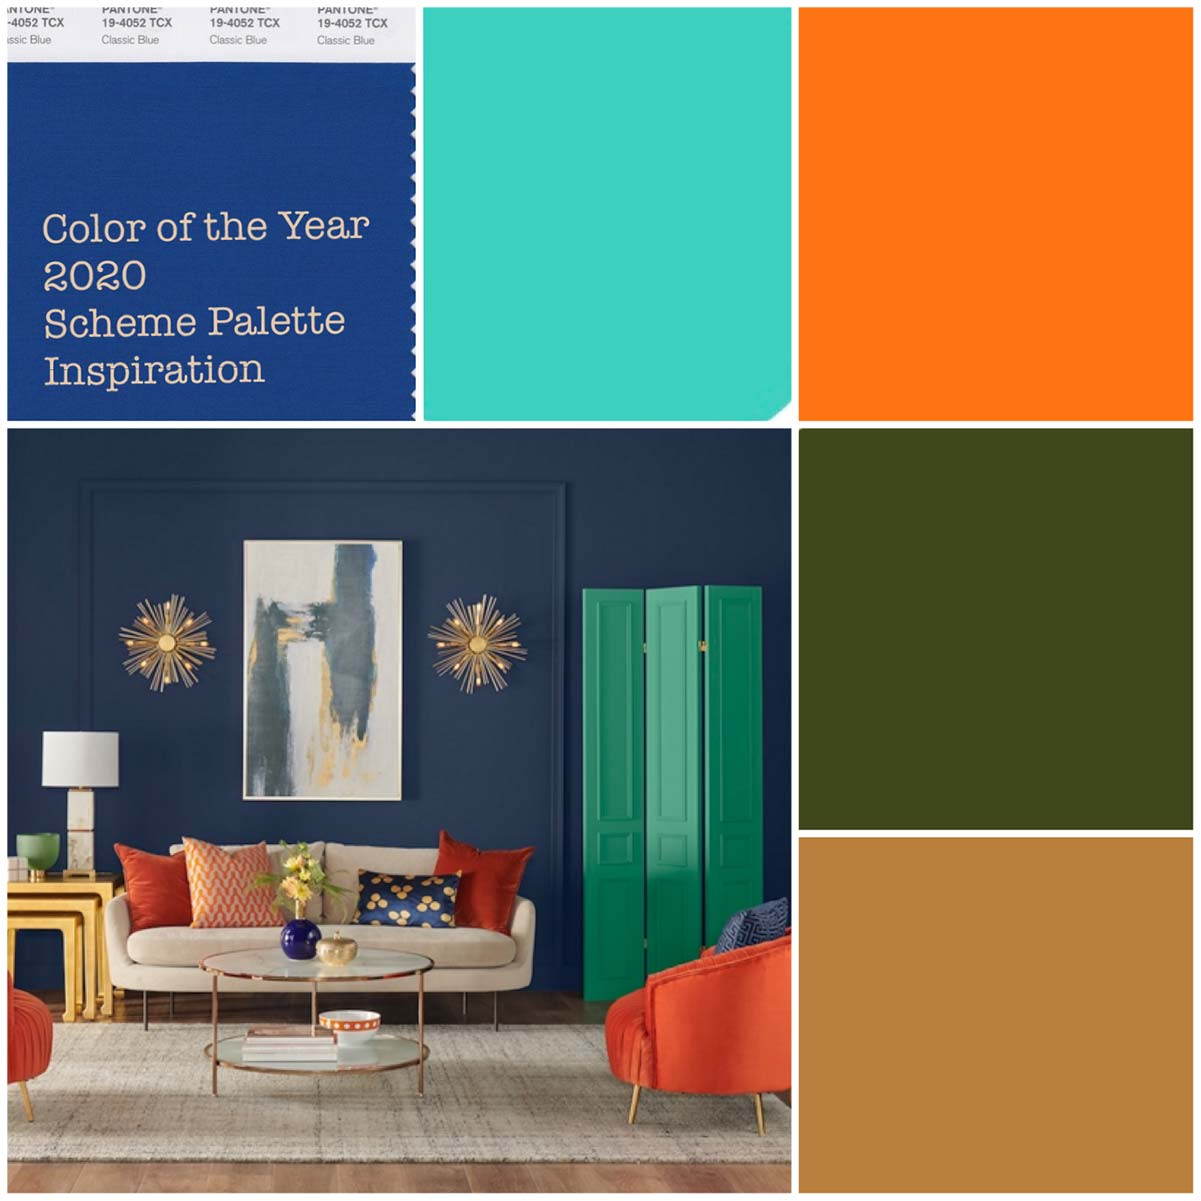 color of the year 2020 scheme palette inspiration